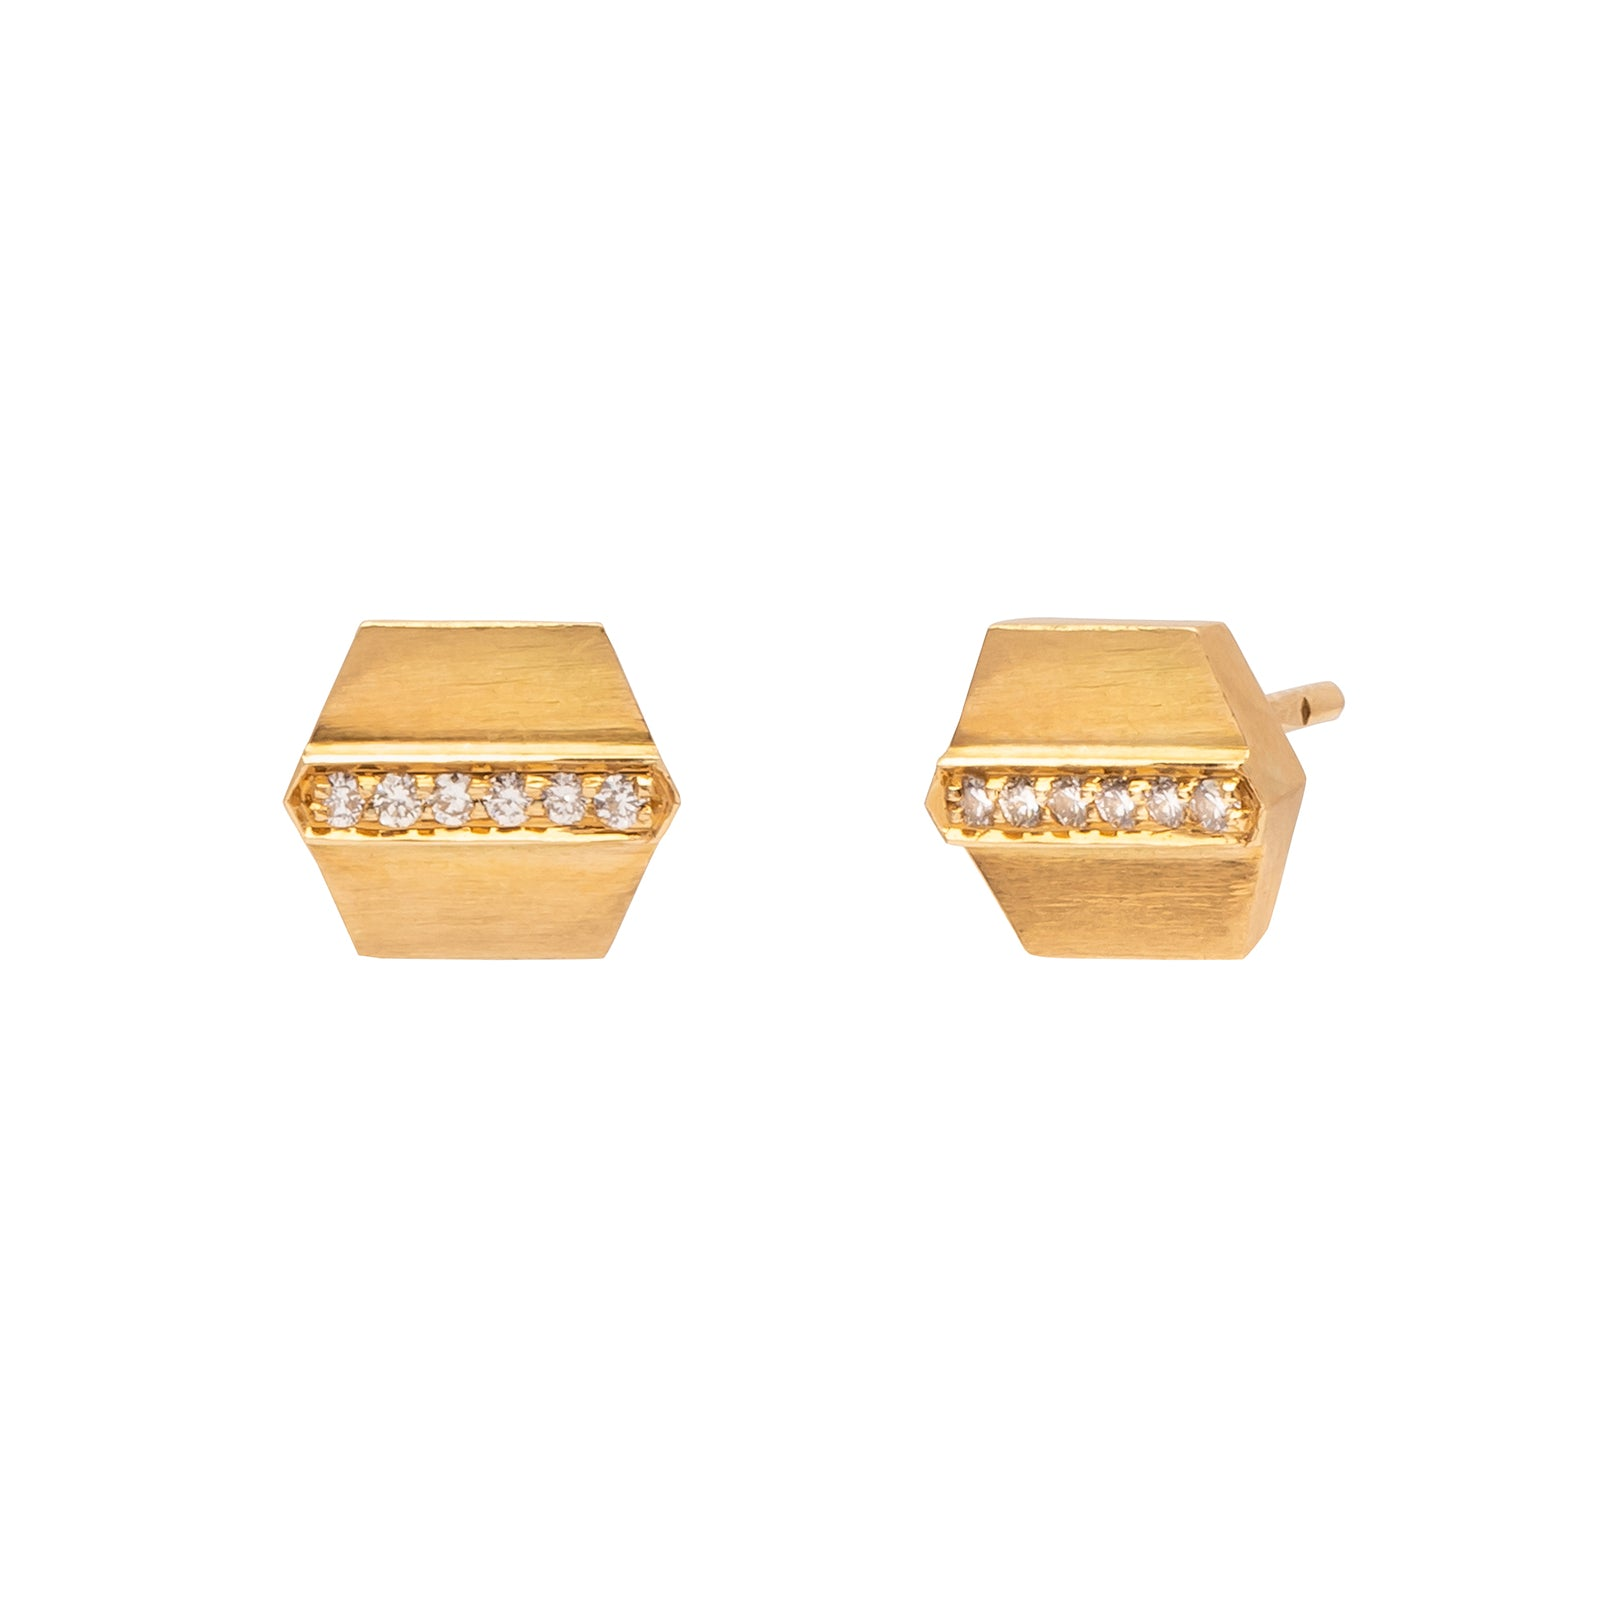 Sethi Couture Maya Stud Earrings - Gold - Earrings - Broken English Jewelry